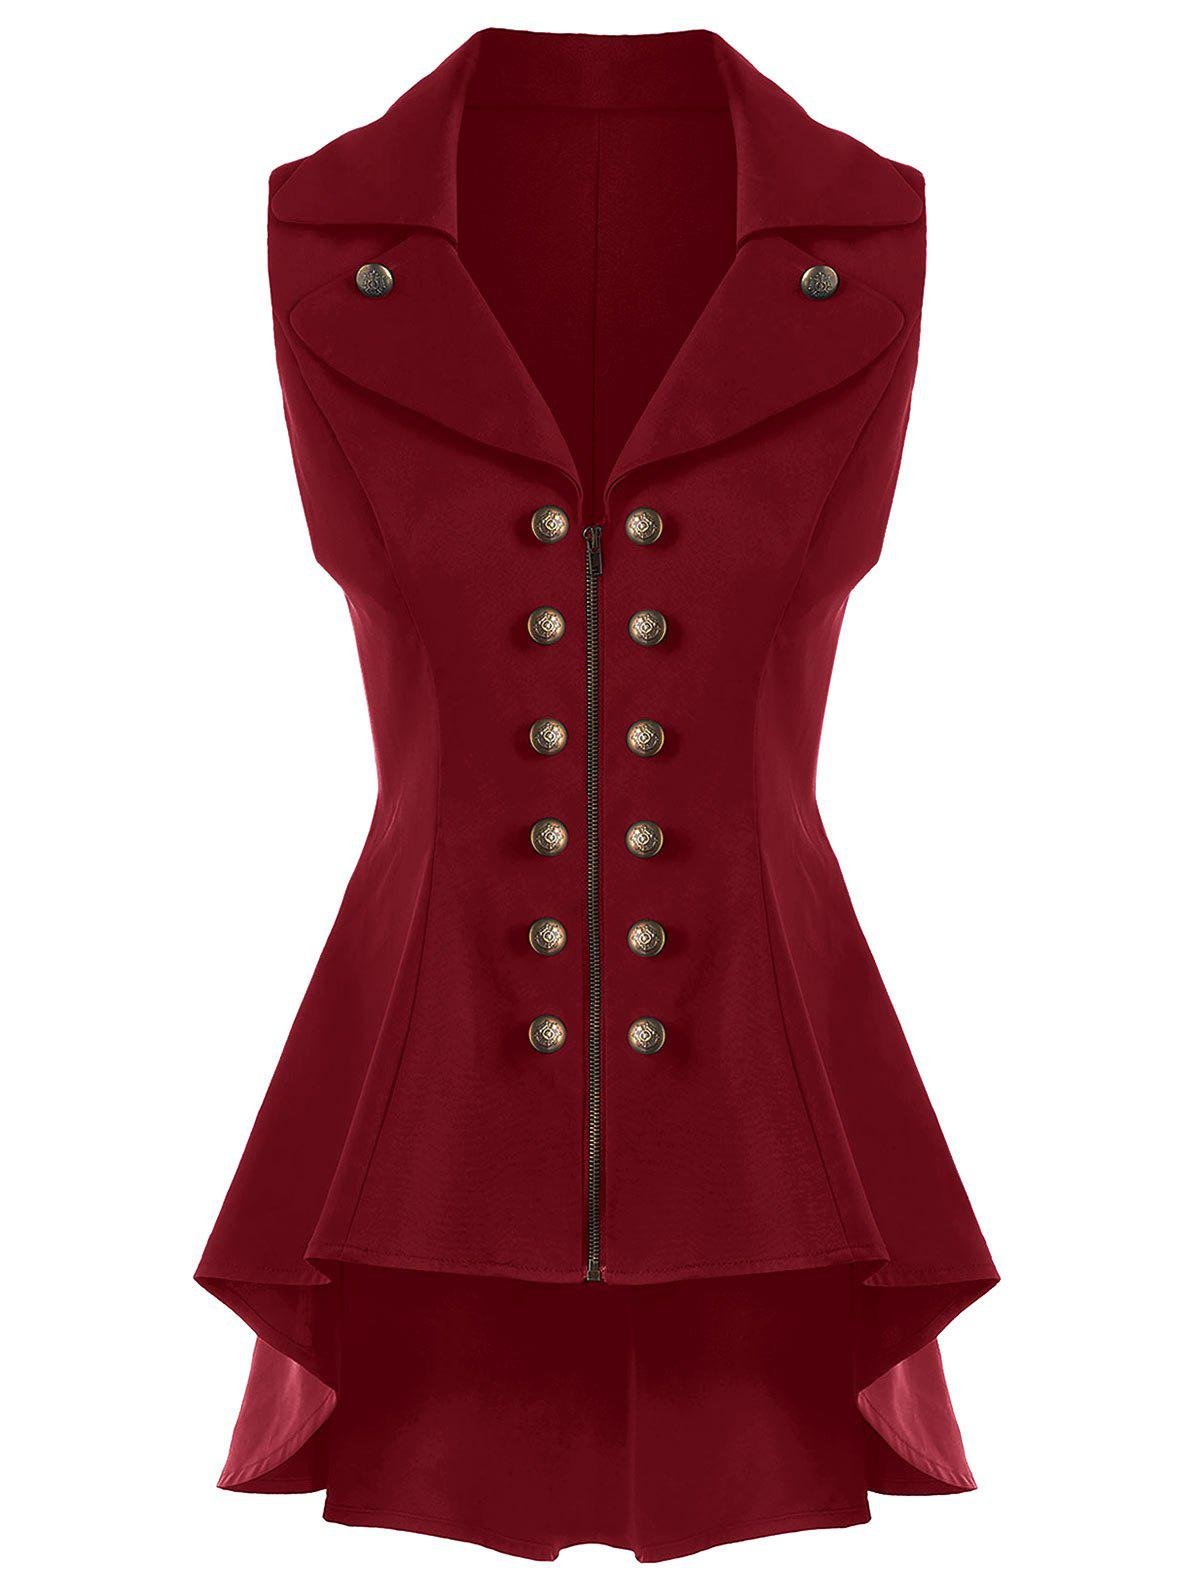 Double Breast High Low Lapel Dressy WaistcoatWOMEN<br><br>Size: M; Color: CLARET; Material: Cotton,Cotton Blends,Polyester; Shirt Length: Long; Collar: Lapel; Closure Type: Zipper; Pattern Type: Solid; Thickness: Standard; Style: Fashion; Season: Spring,Summer; Embellishment: Button; Weight: 0.5500kg; Package Contents: 1 x Waistcoat;